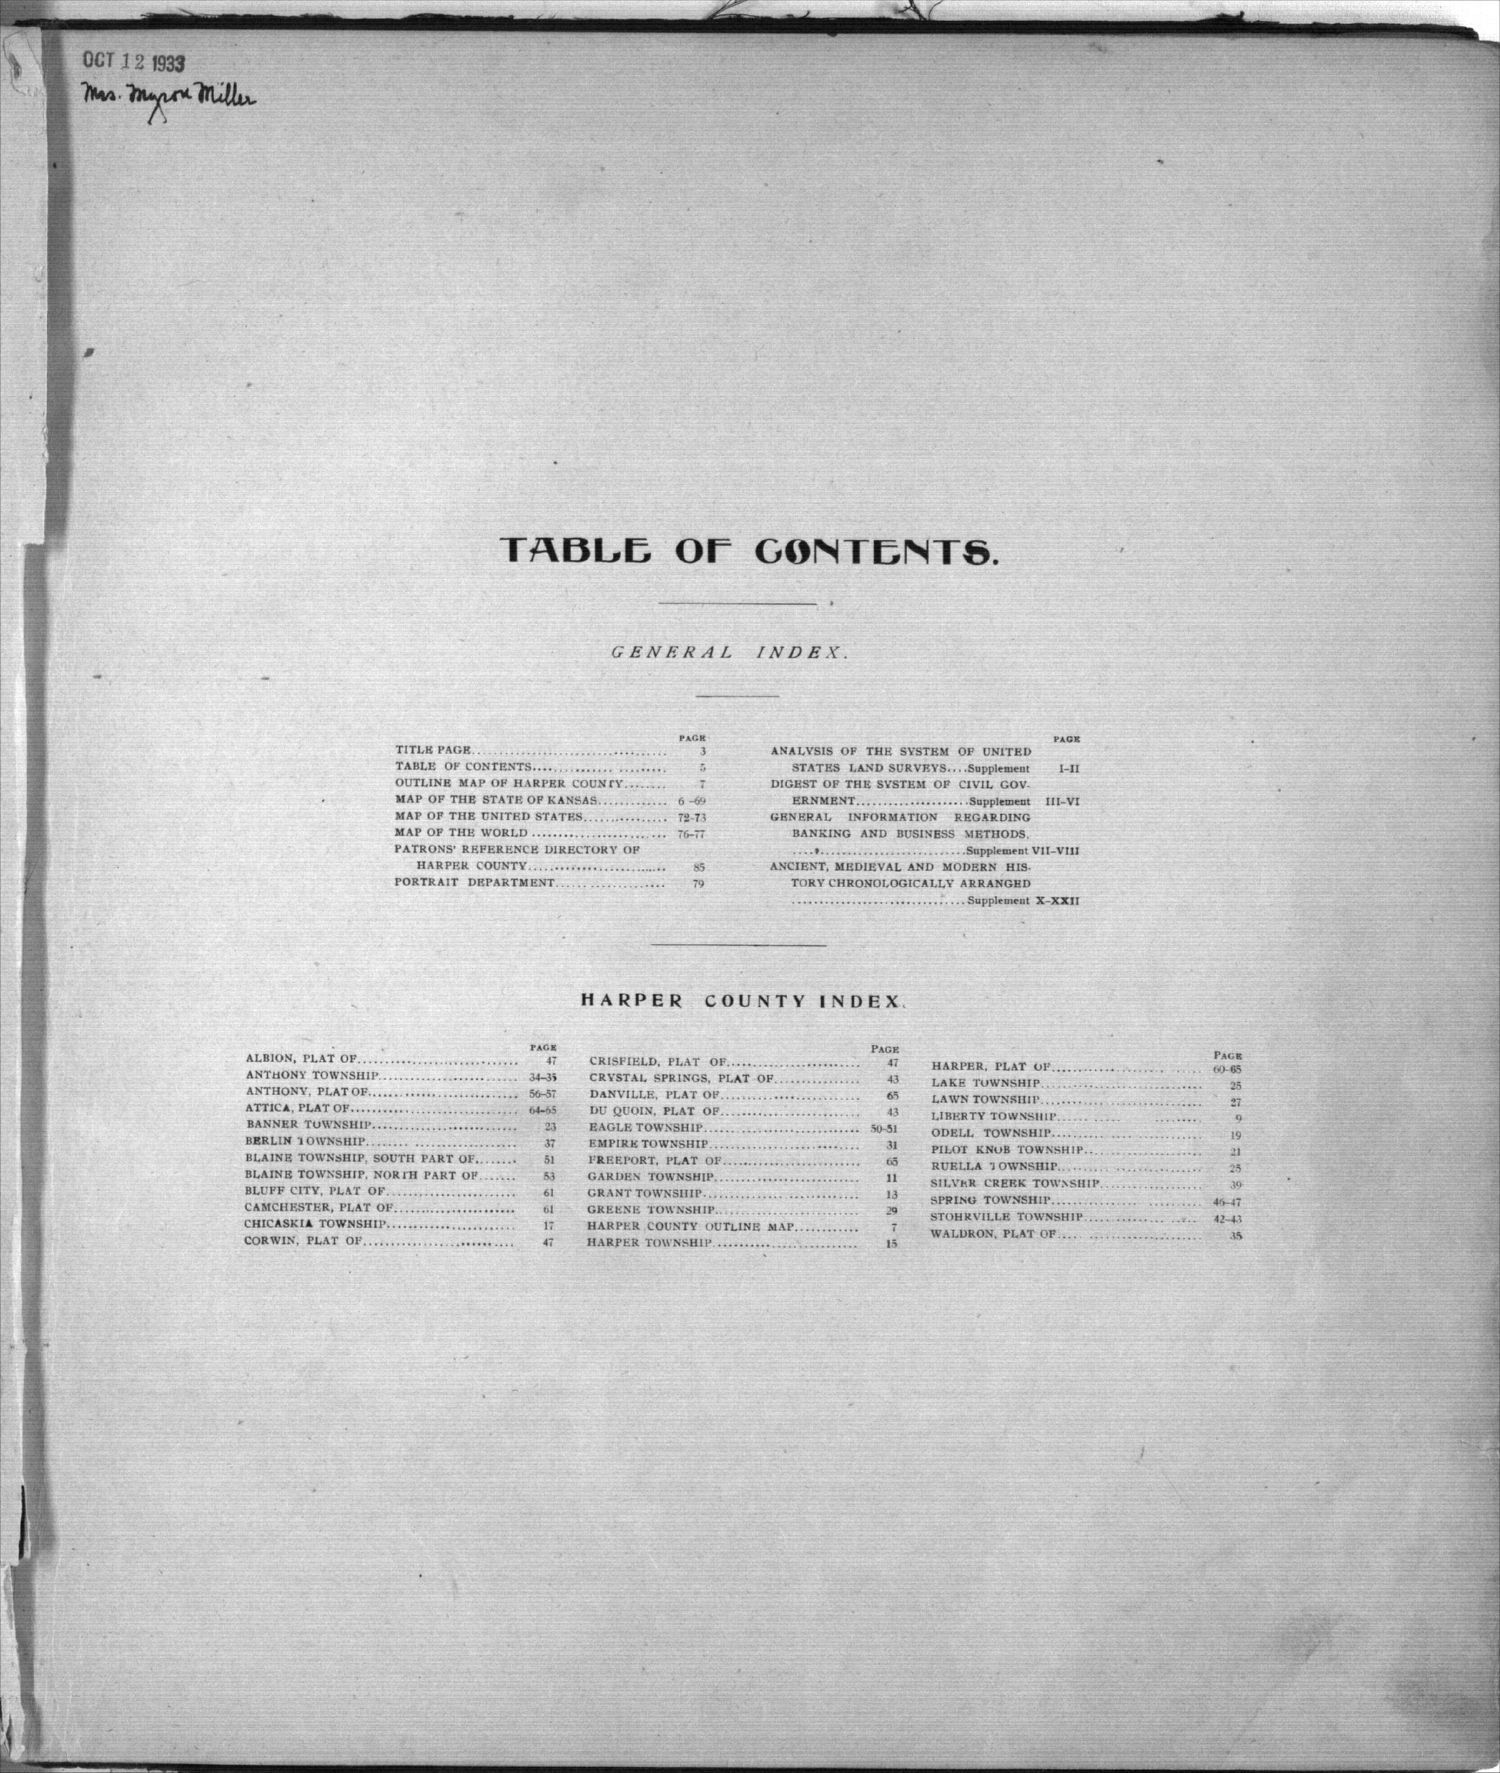 Standard atlas of Harper County, Kansas - Table of Contents